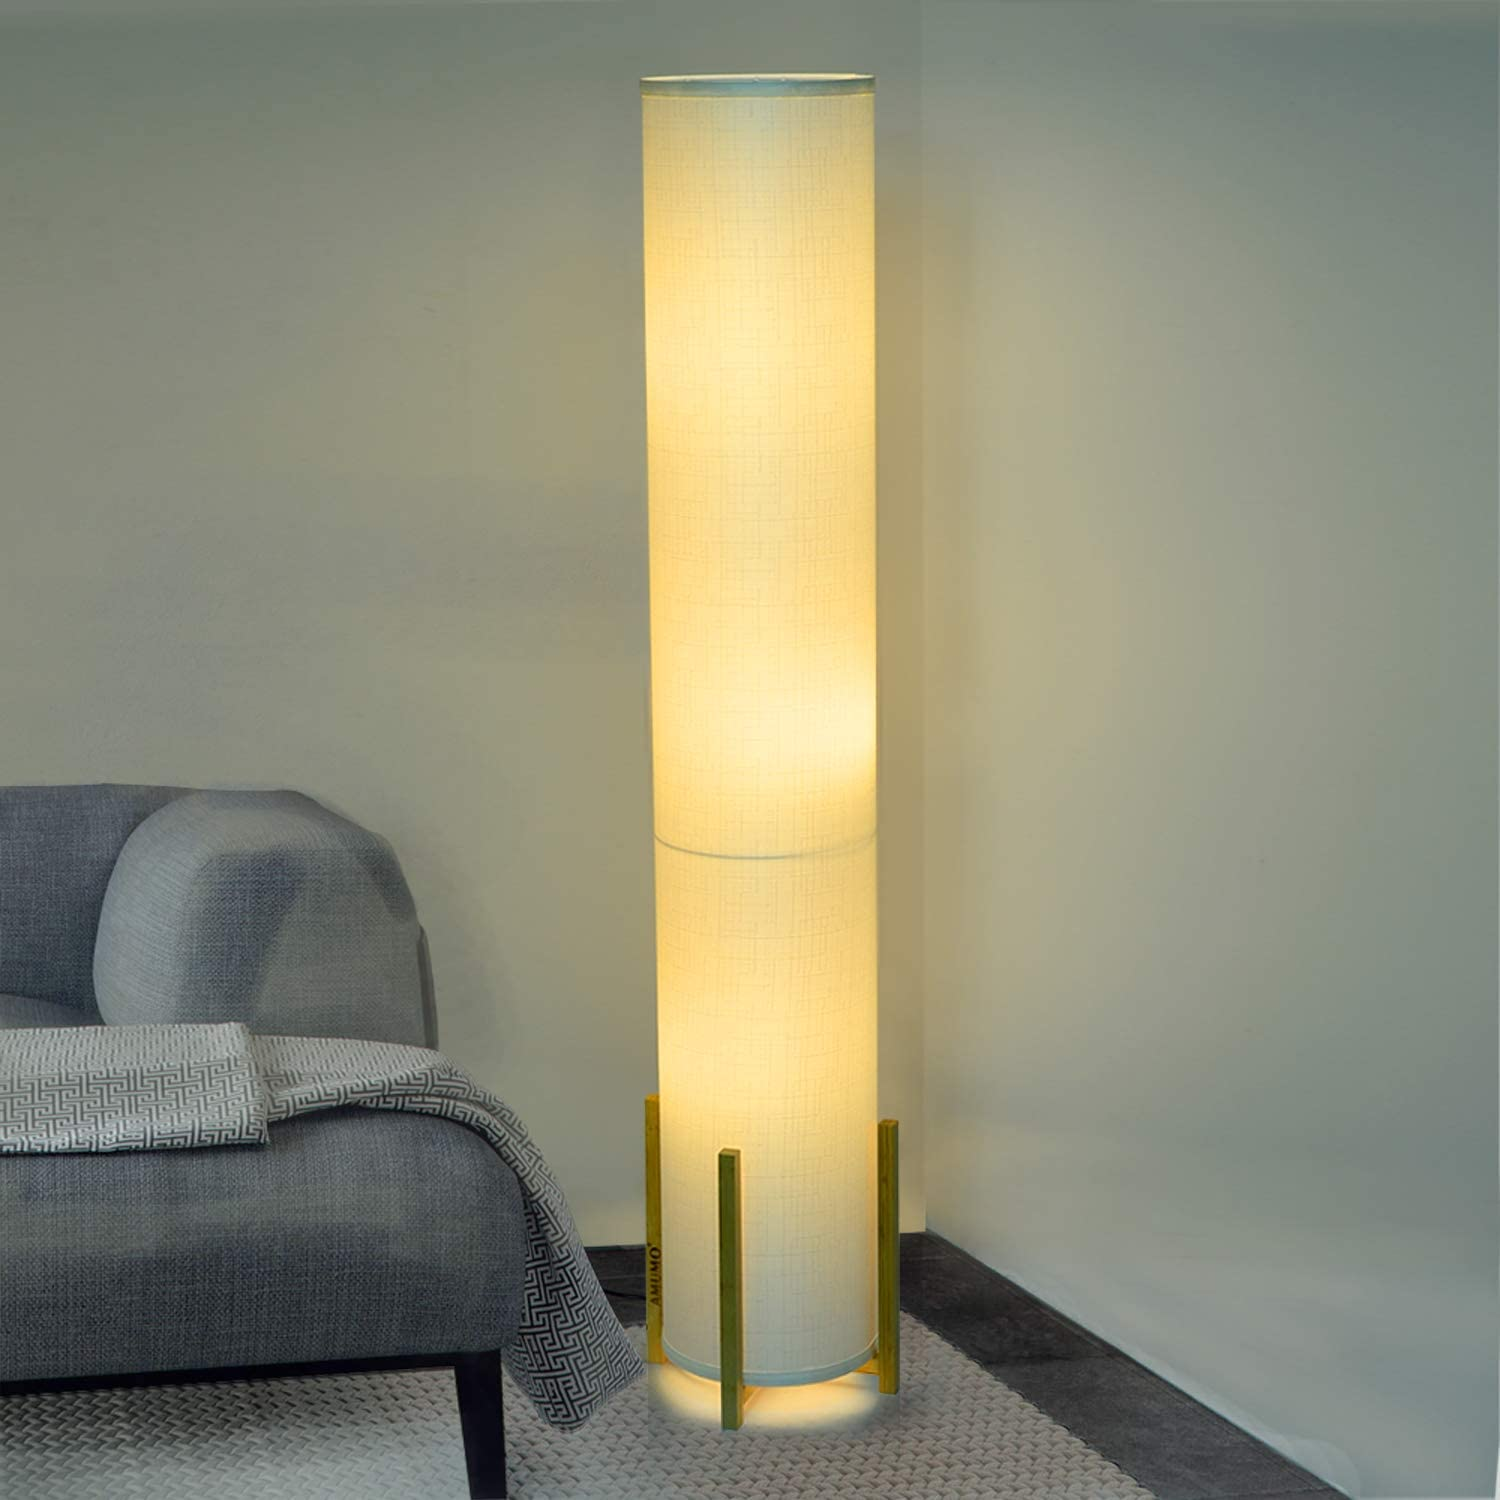 Floor Lamp, AMUMO Decor Modern Tall Floor Lamps for Bedrooms - Contemporary Standing Tower Soft Light for Living Room Office Warm Atmosphere - Wood Frame, White Fabric Shade with 3 LED Bulbs